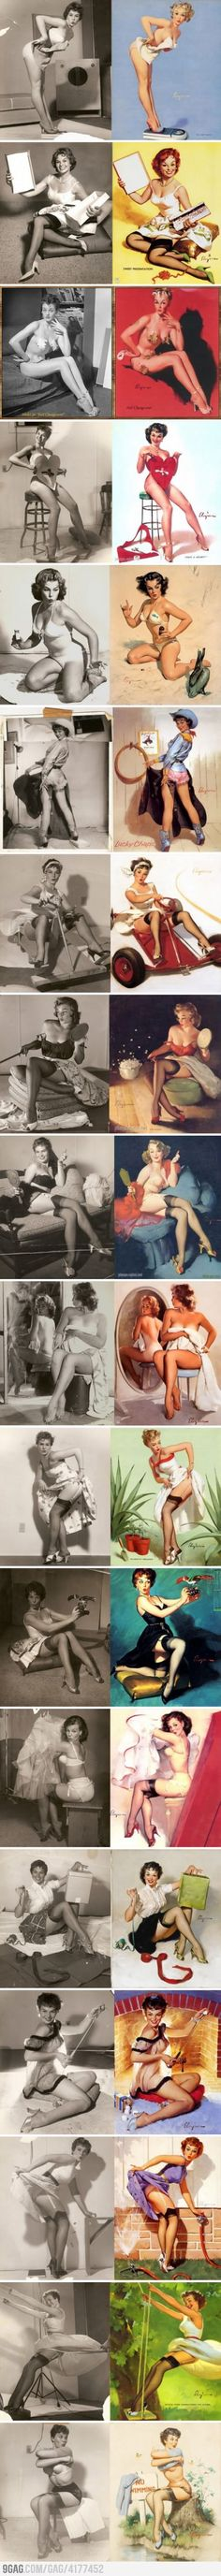 Real girls vs. Pin-up girls. I want to know what real woman sits on a pouf